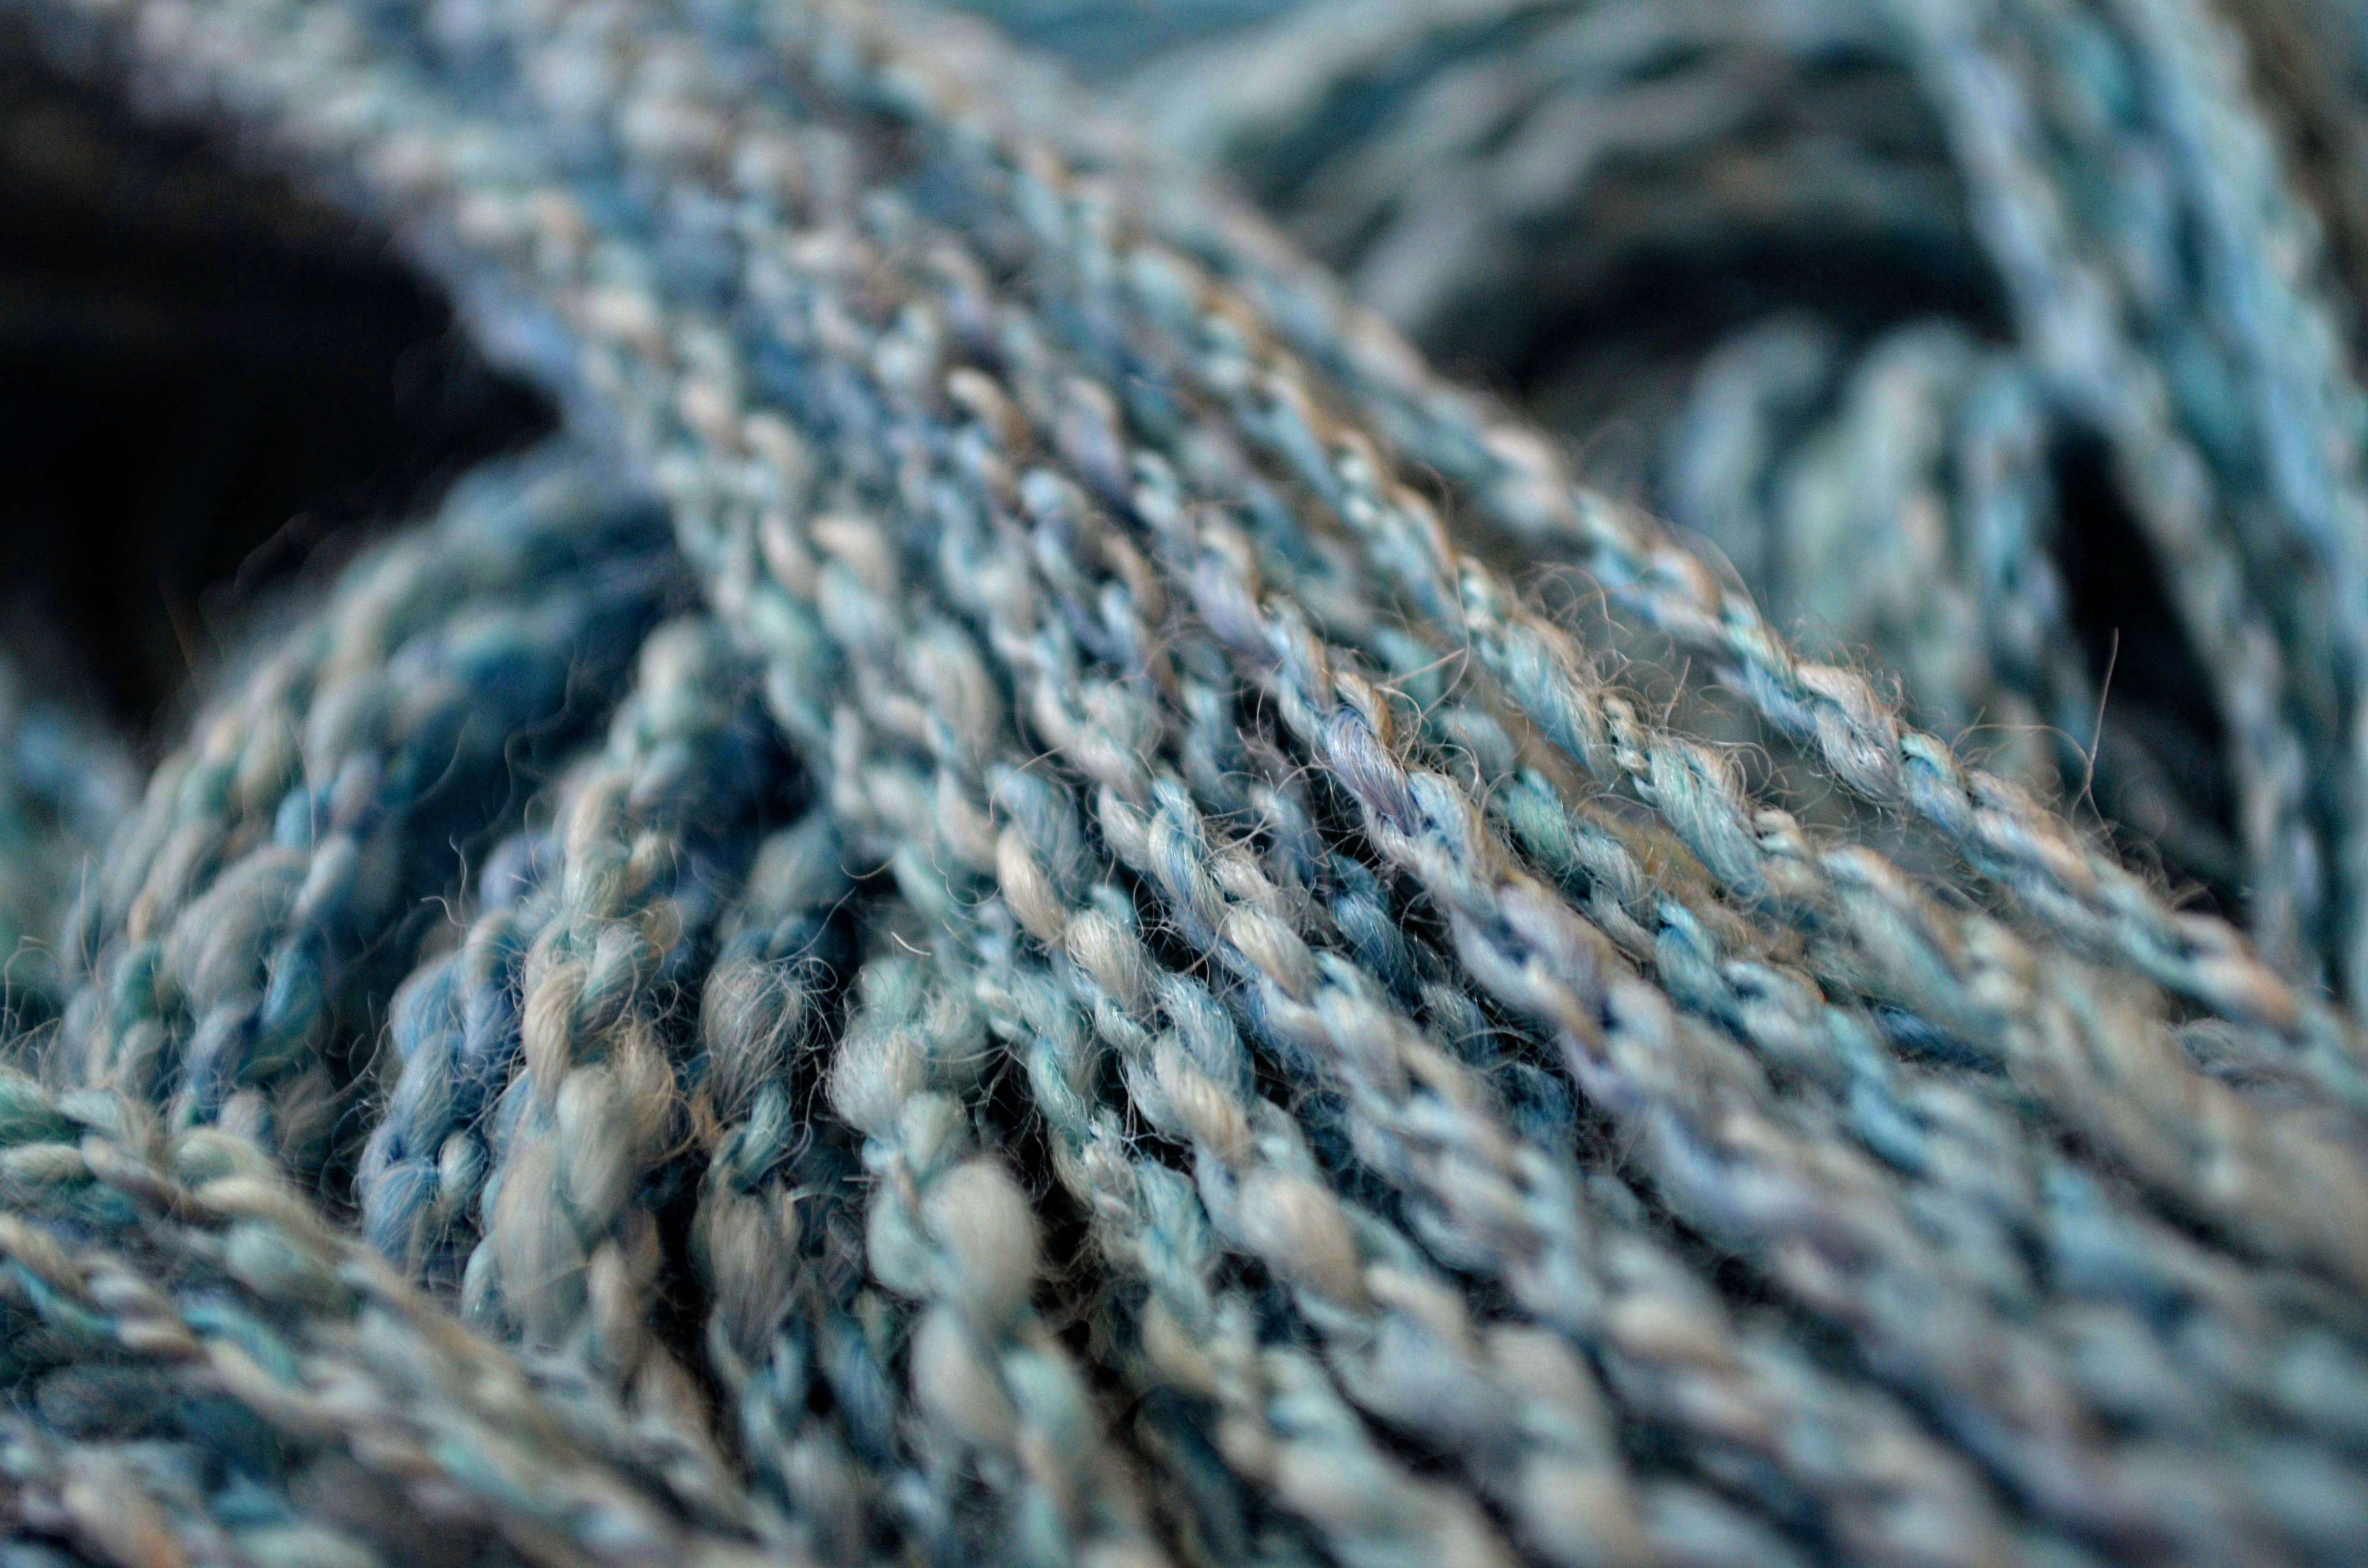 Knitting Wallpaper Free : Yarn string pattern knitting rope psychedelic bokeh craft